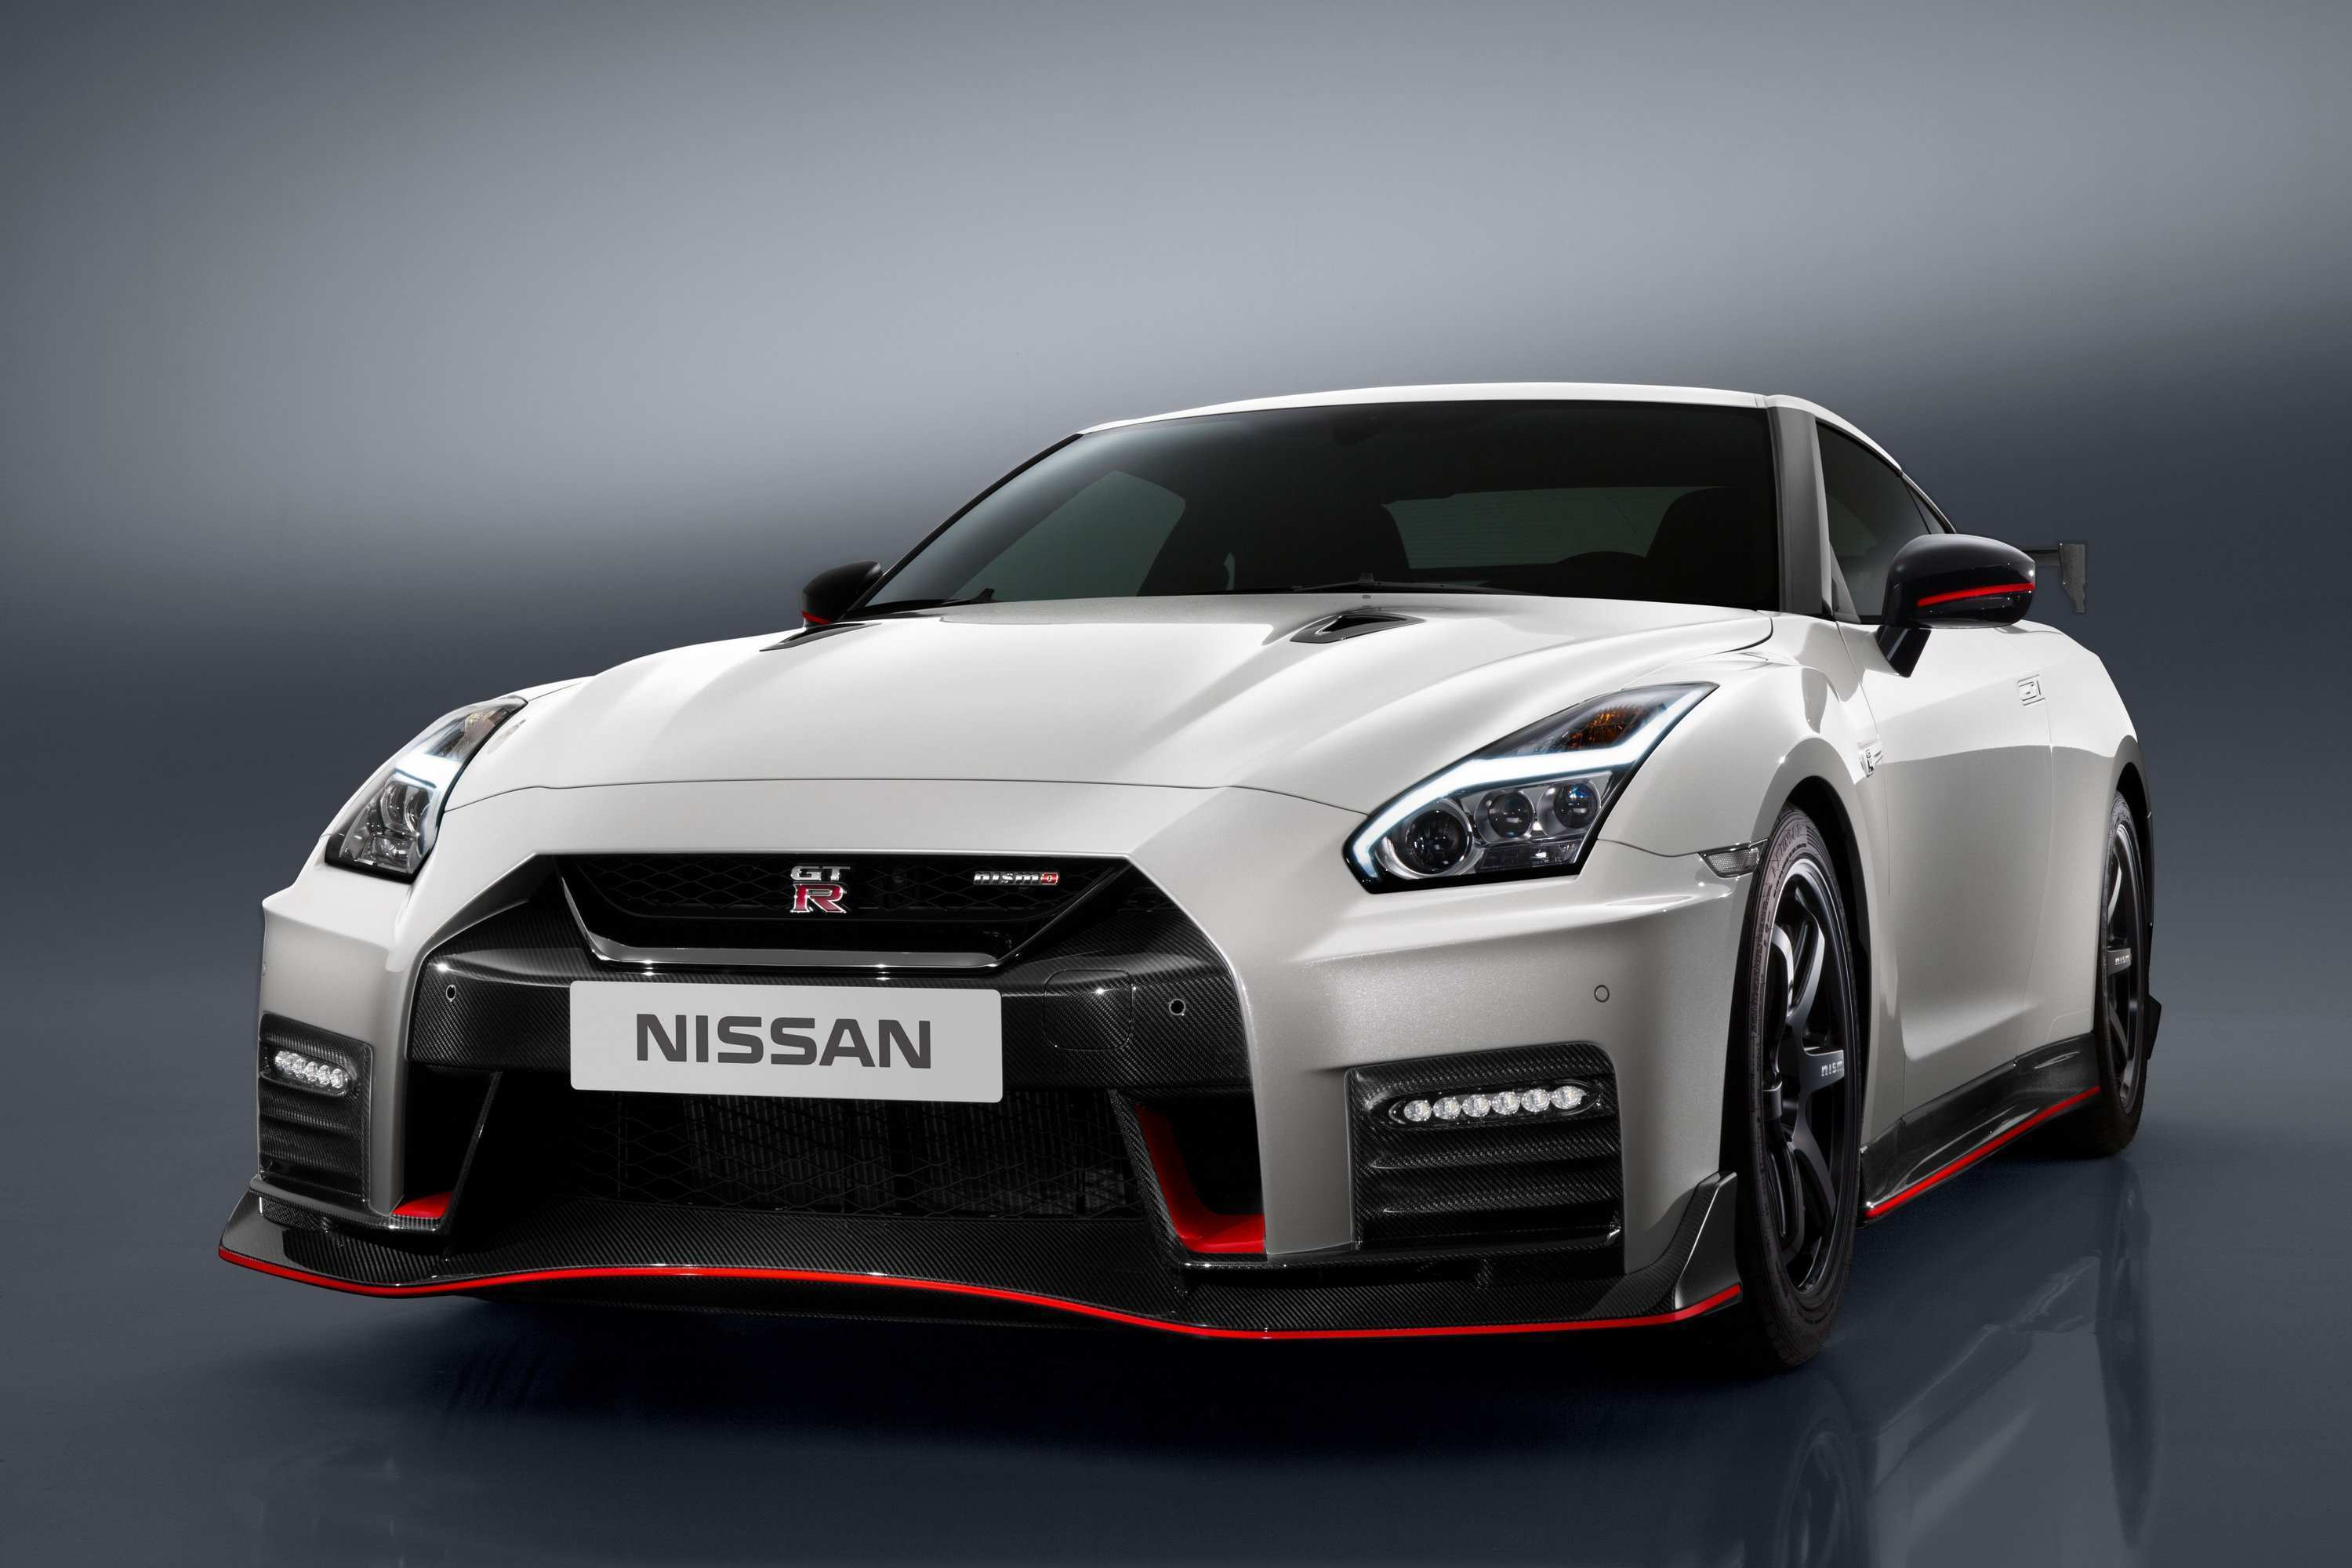 44 All New 2020 Nissan Gtr R36 Specs Images with 2020 Nissan Gtr R36 Specs